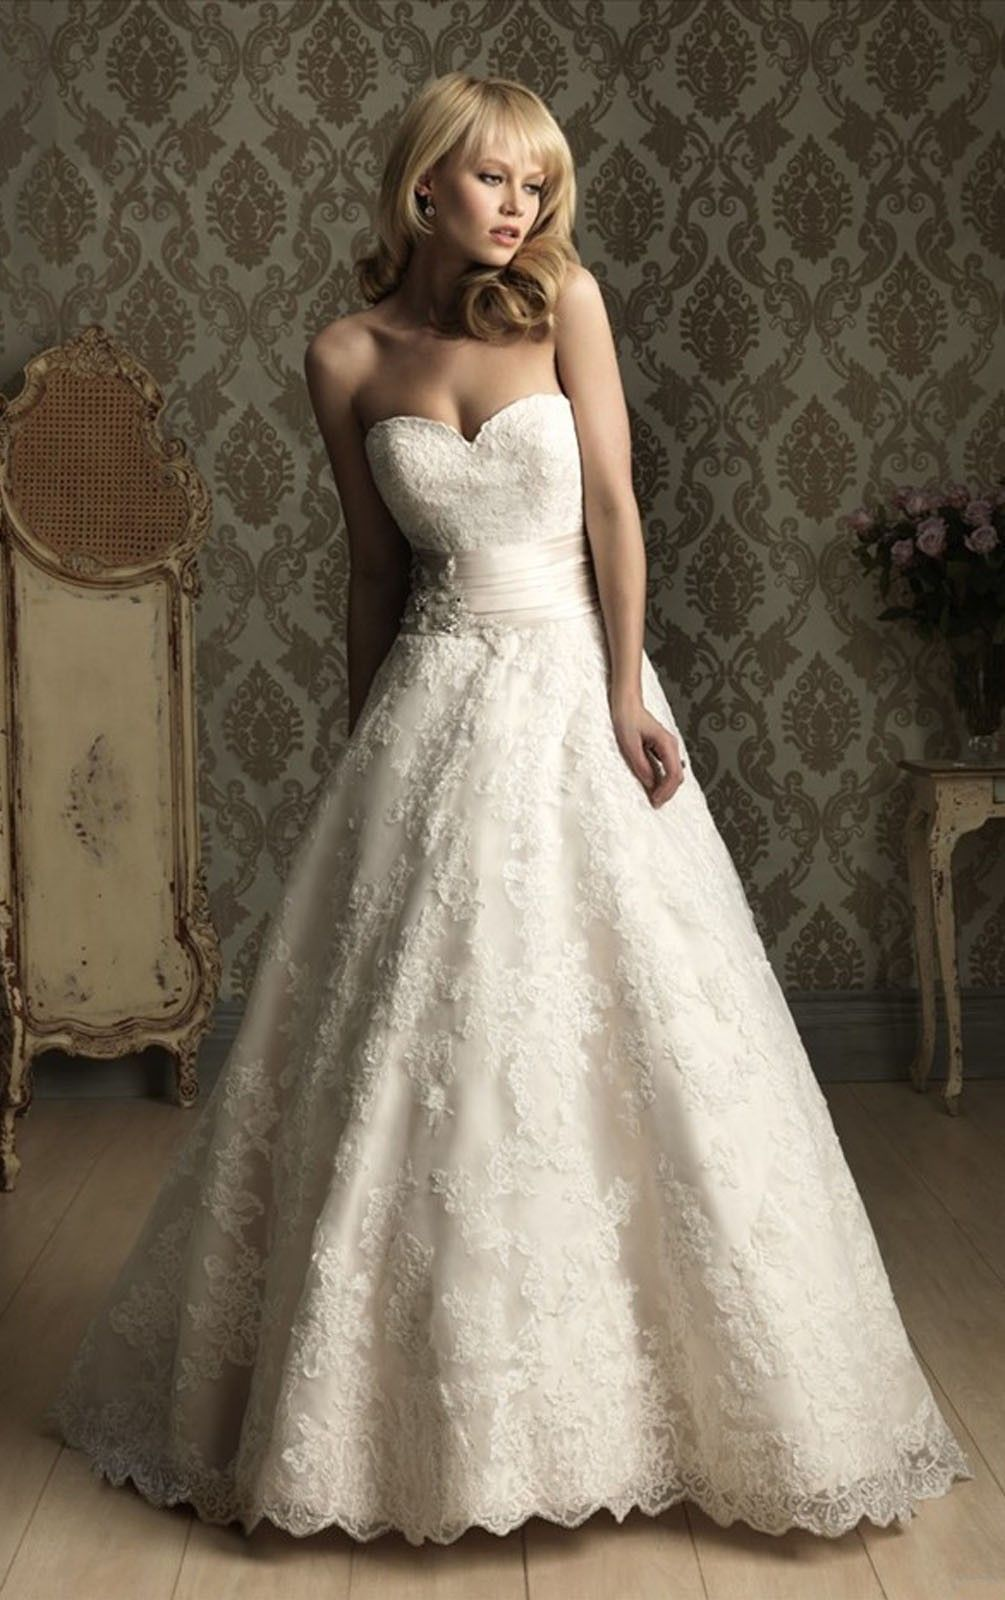 Petite Wedding Dresses | how-to-choose-wedding-dress-according-to ...